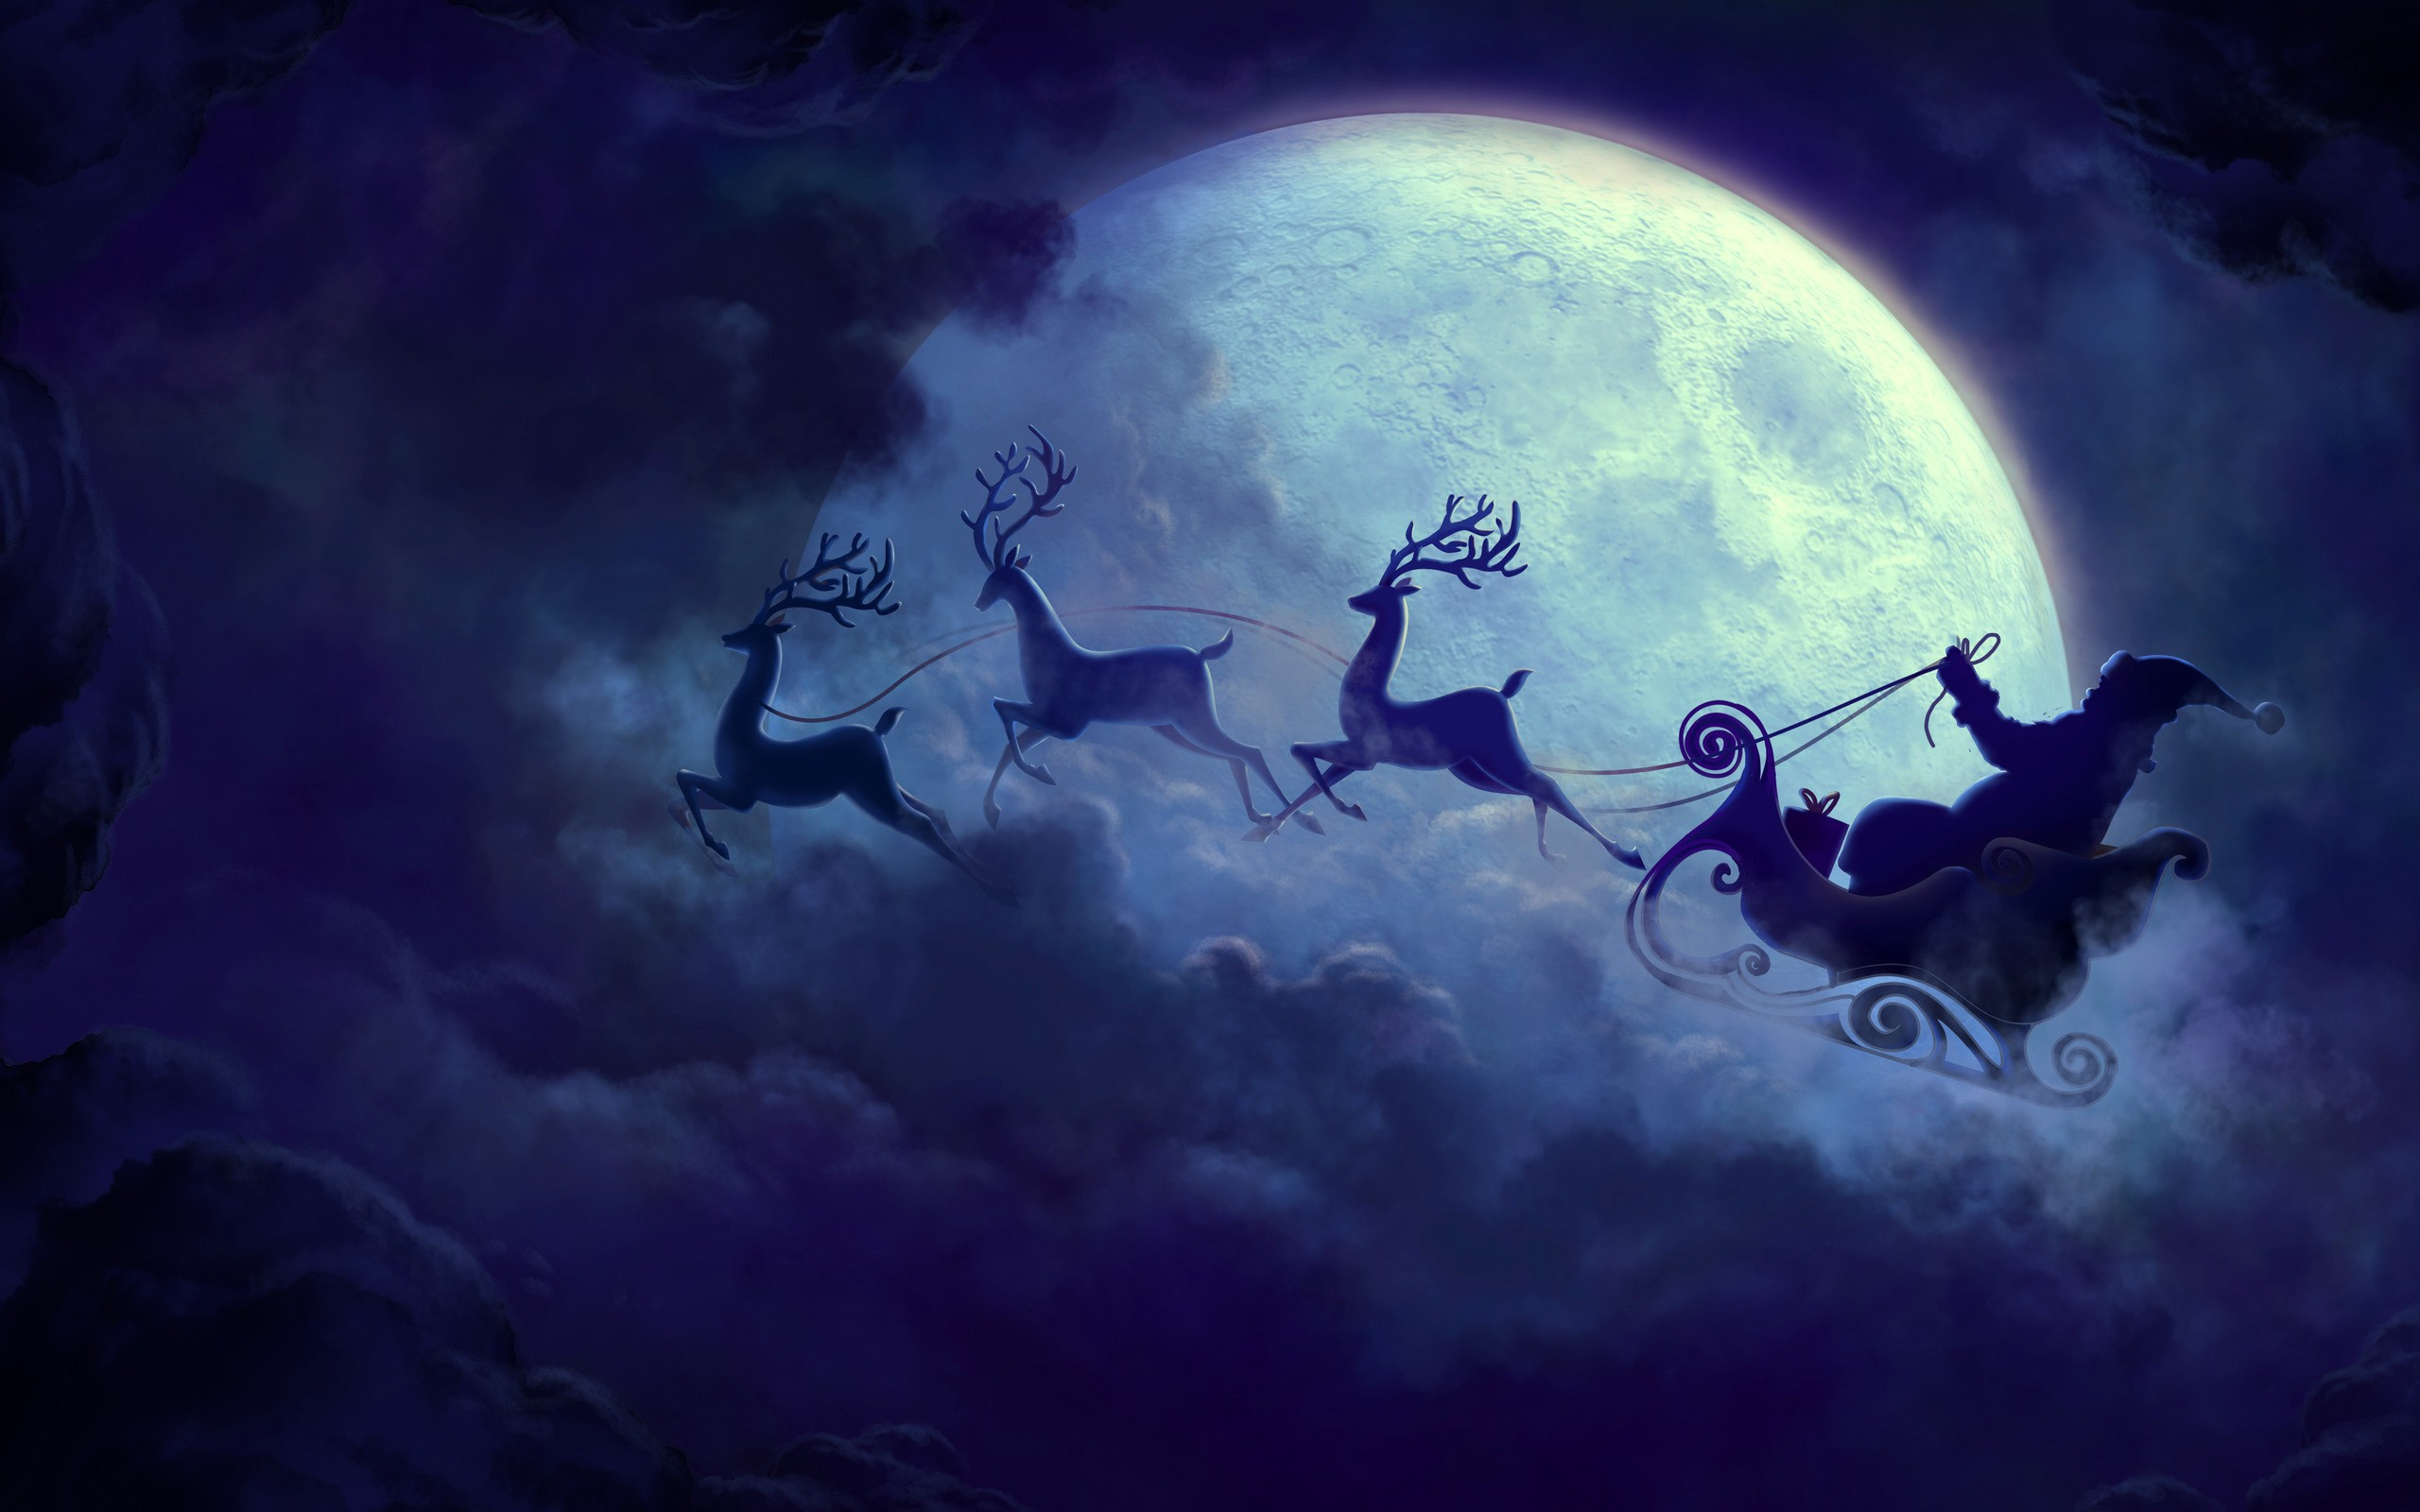 Wallpapers Wide Hd 1920x1080 Cars Santa Claus Moon Hd Celebrations 4k Wallpapers Images